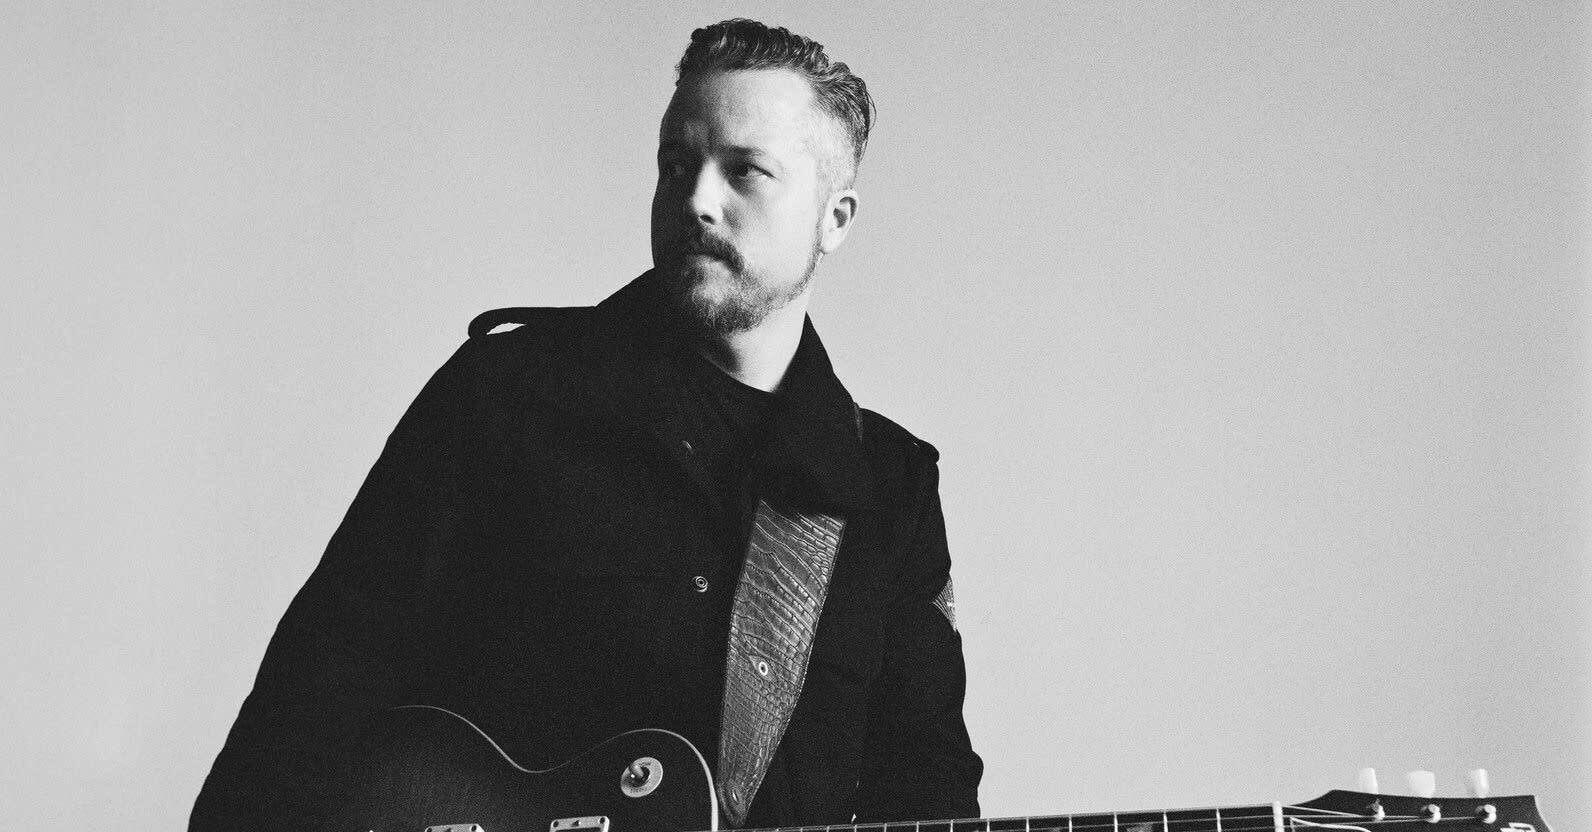 Jason Isbell and the 400 Unit Announce New Covers Album, Share Cover of R.E.M.'s 'Driver 8'